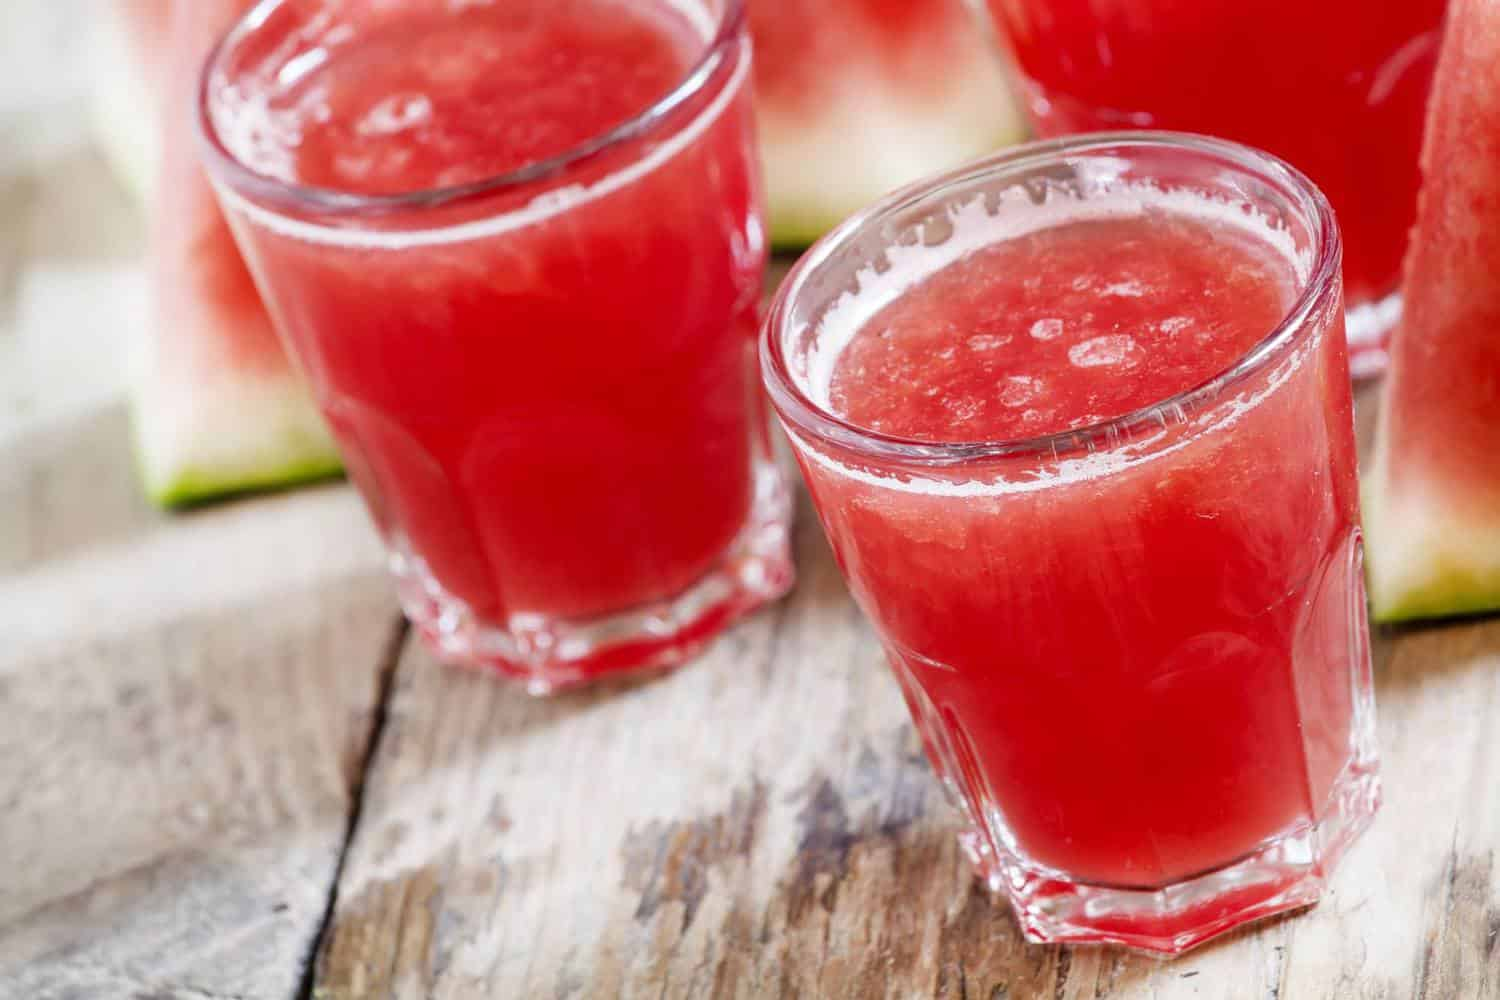 Glasses of watermelon-tomato juice.